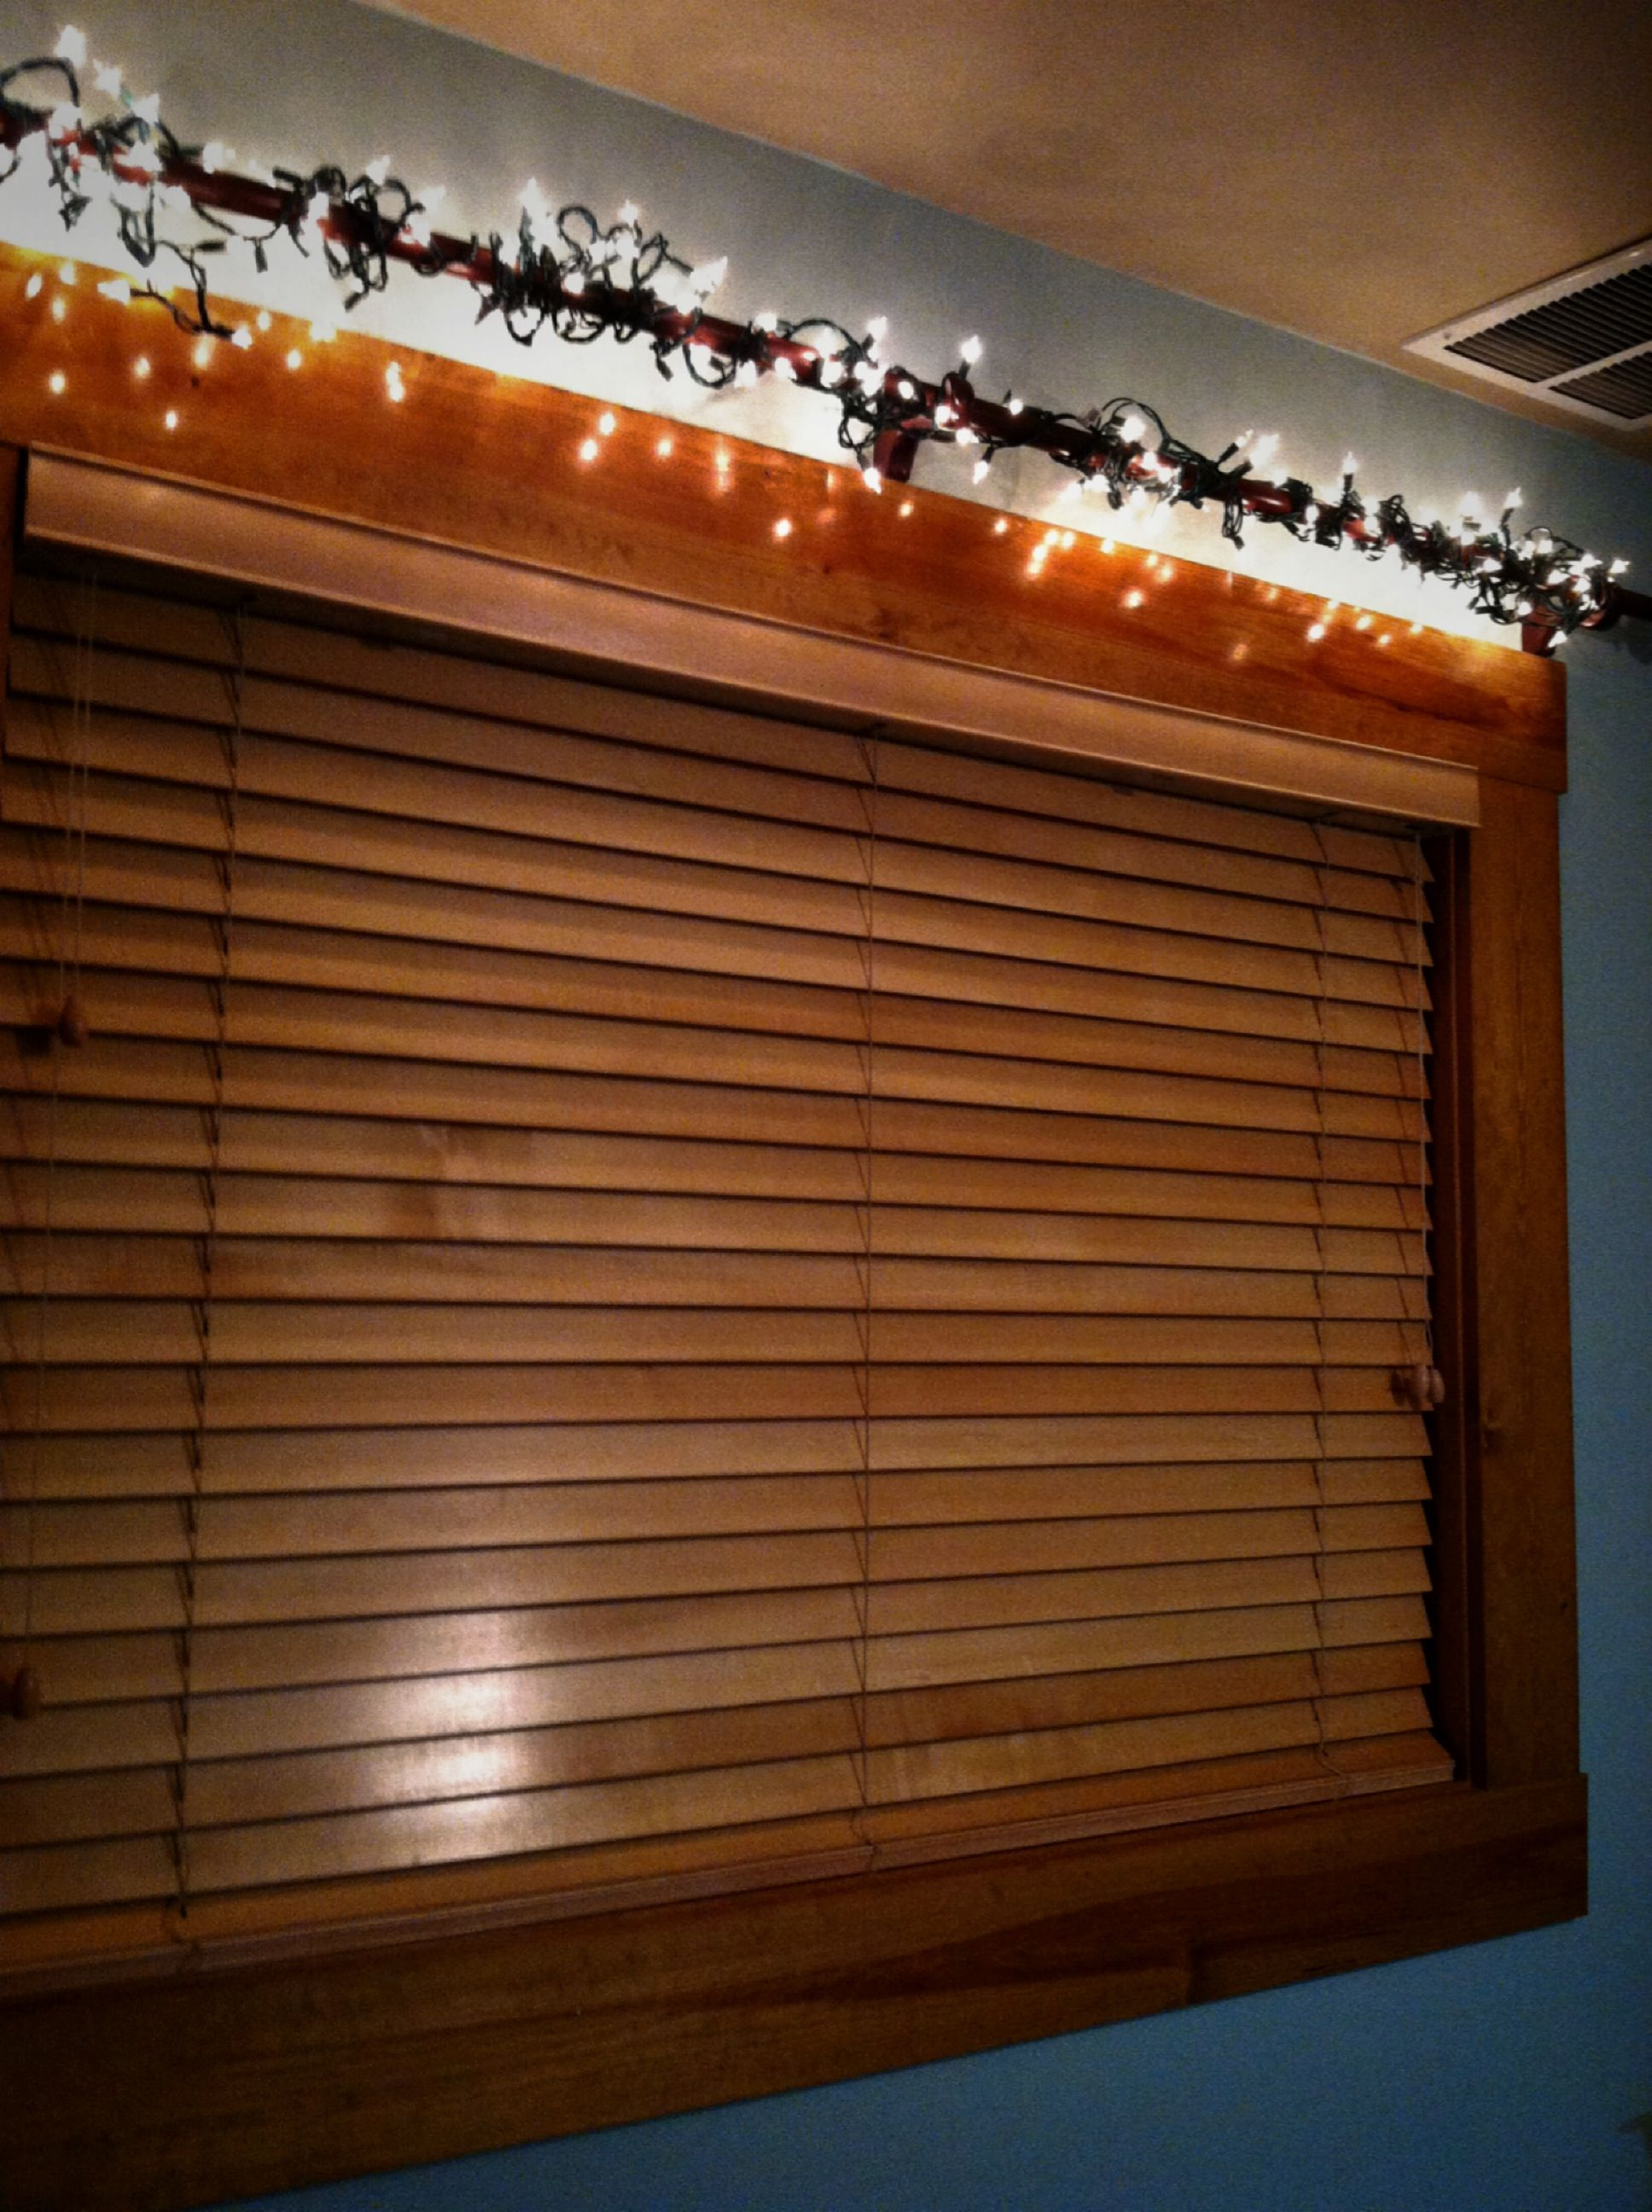 Hang Christmas Lights Over Window With Curtain Rod Hanging Christmas Lights Christmas Lights Home